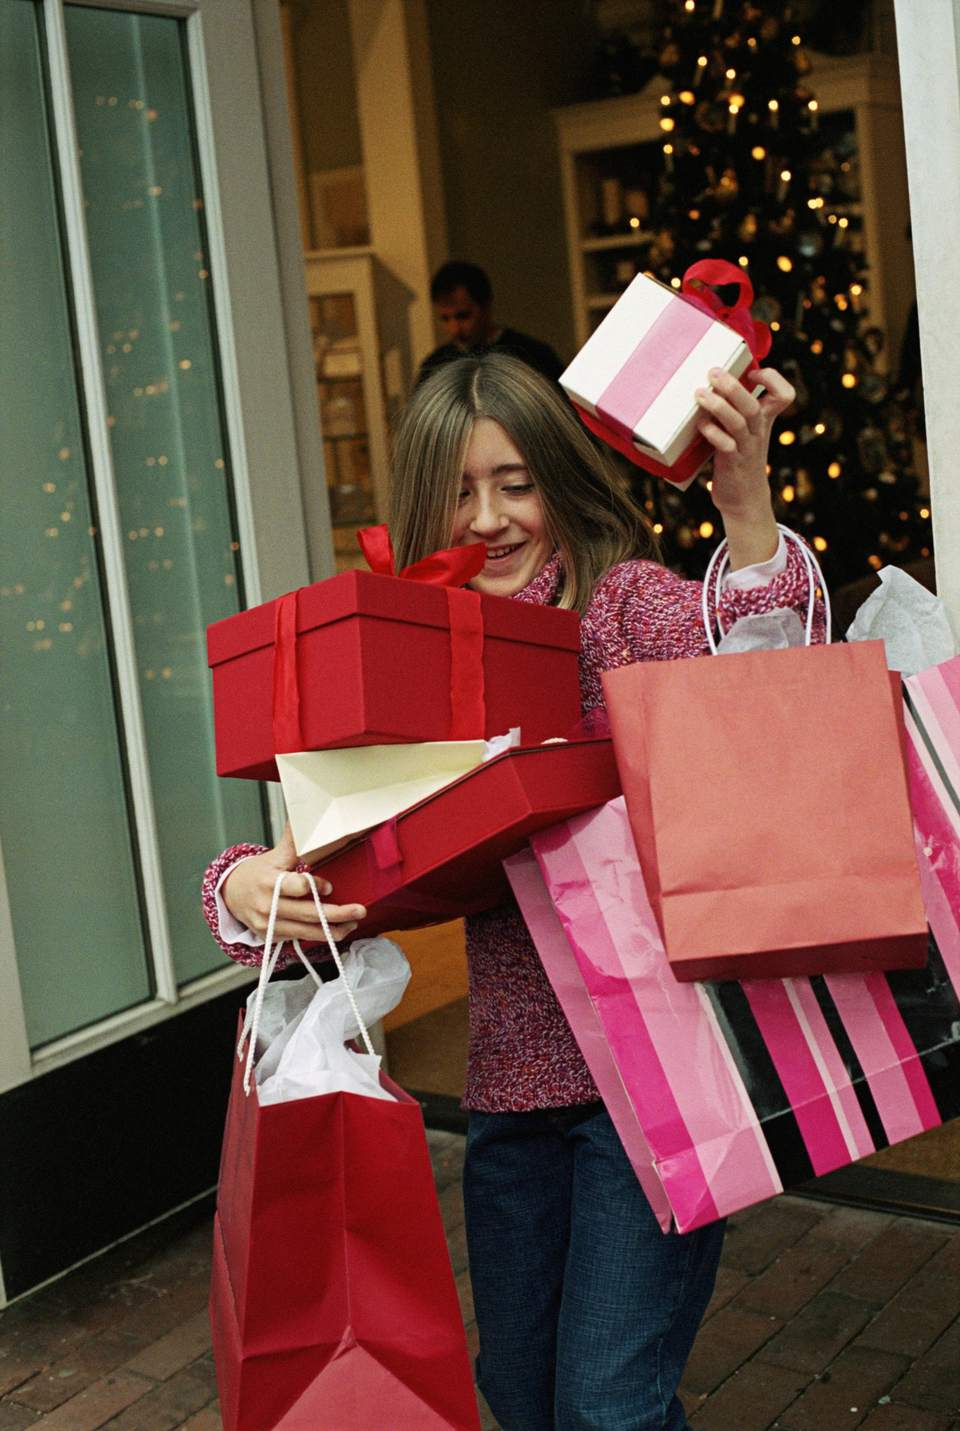 last minute christmas shopping - What Time Does The Mall Close On Christmas Eve